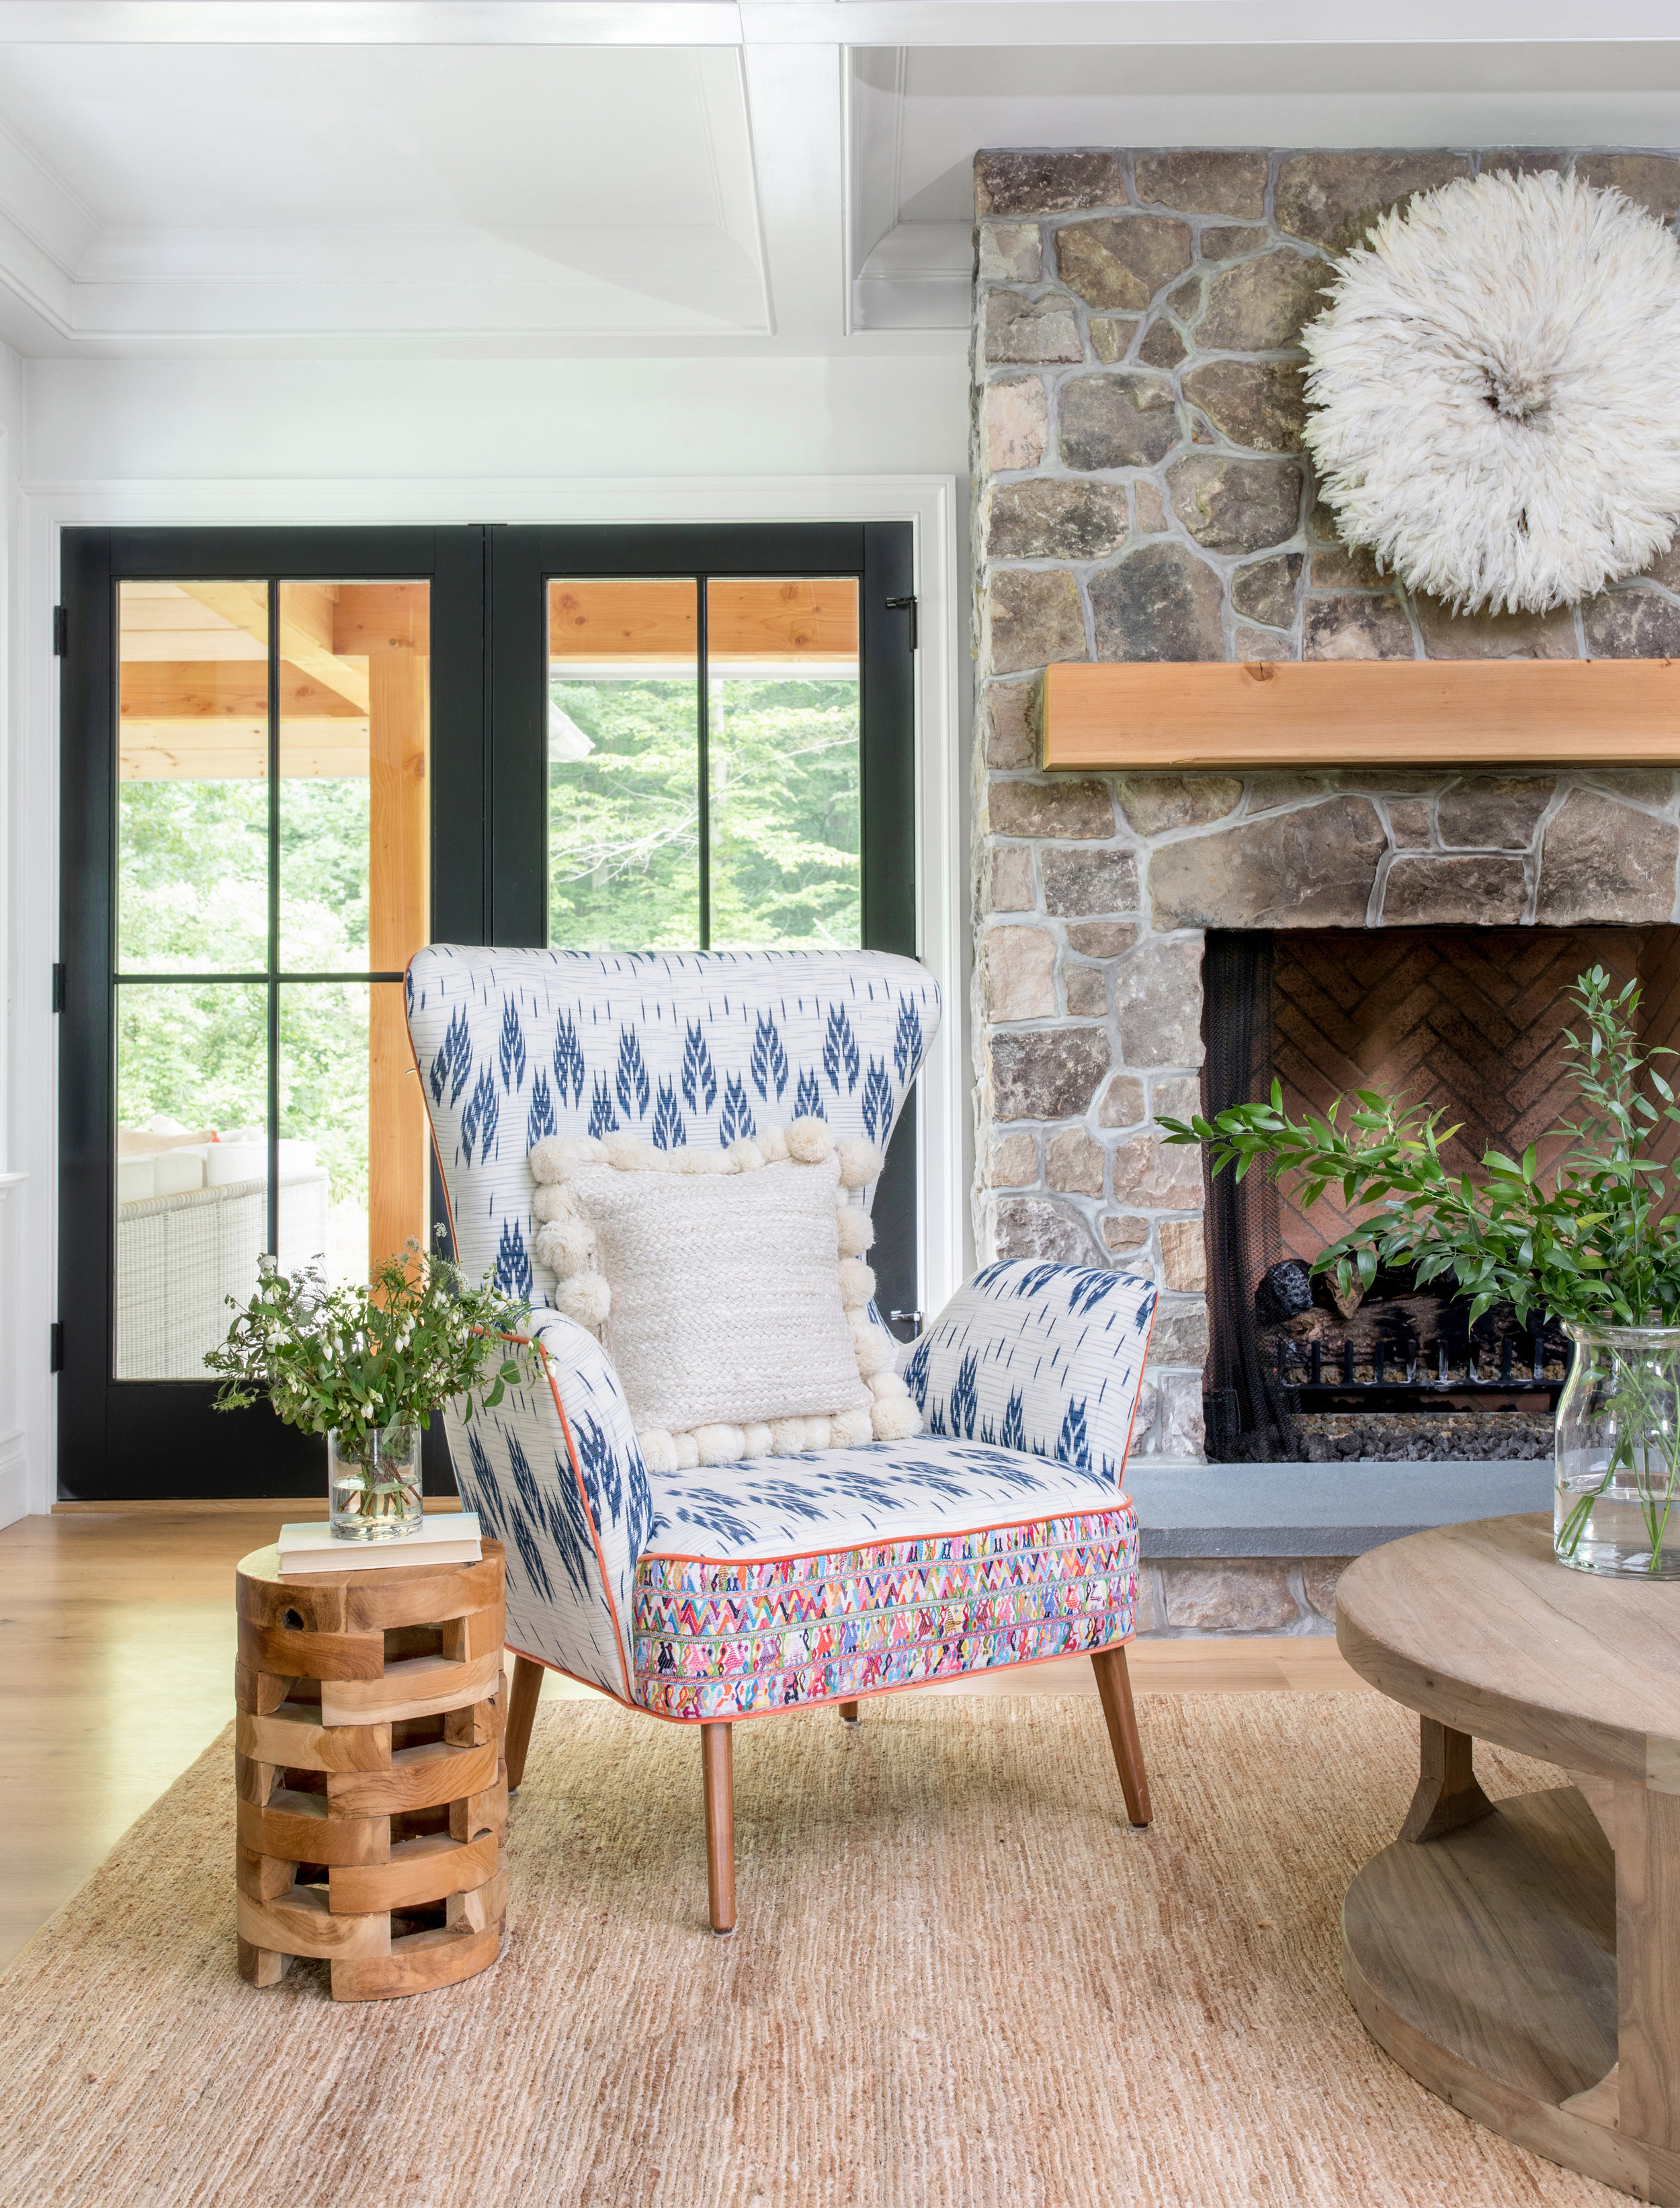 House Tour-  I Love This House's Modern Twist on Classic Traditional Style 5.jpeg